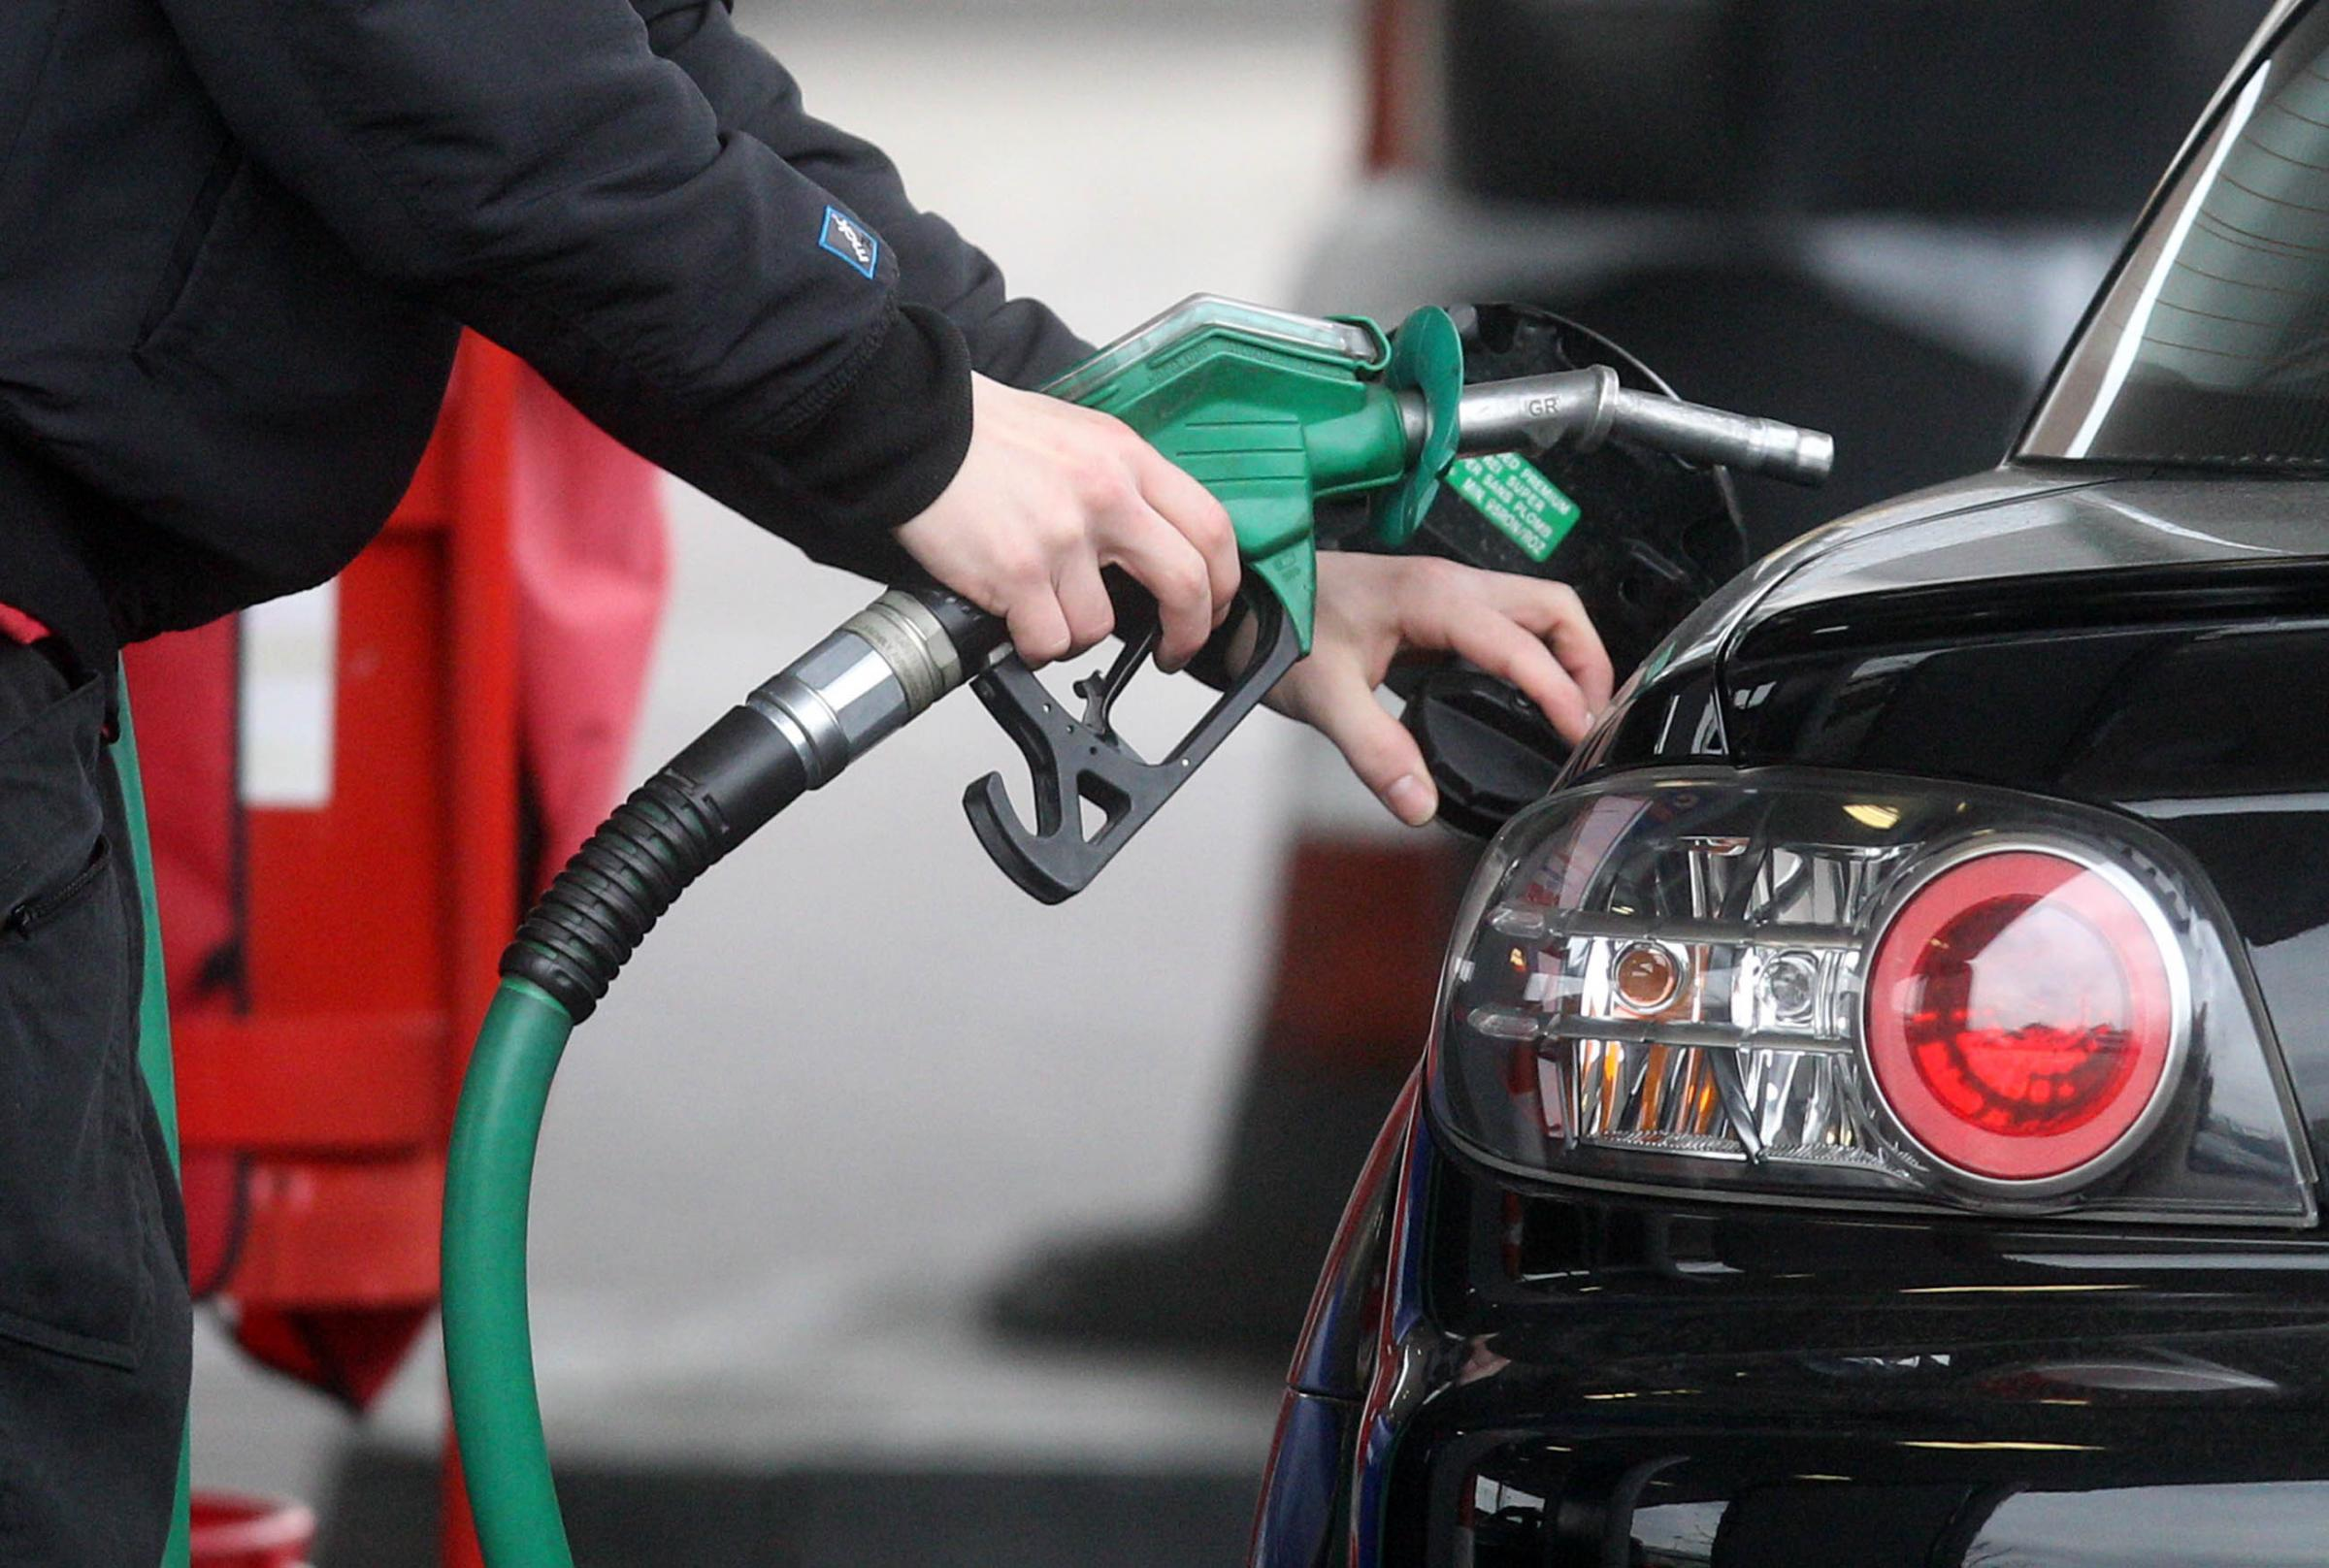 Ban on diesel and petrol cars divides Britain